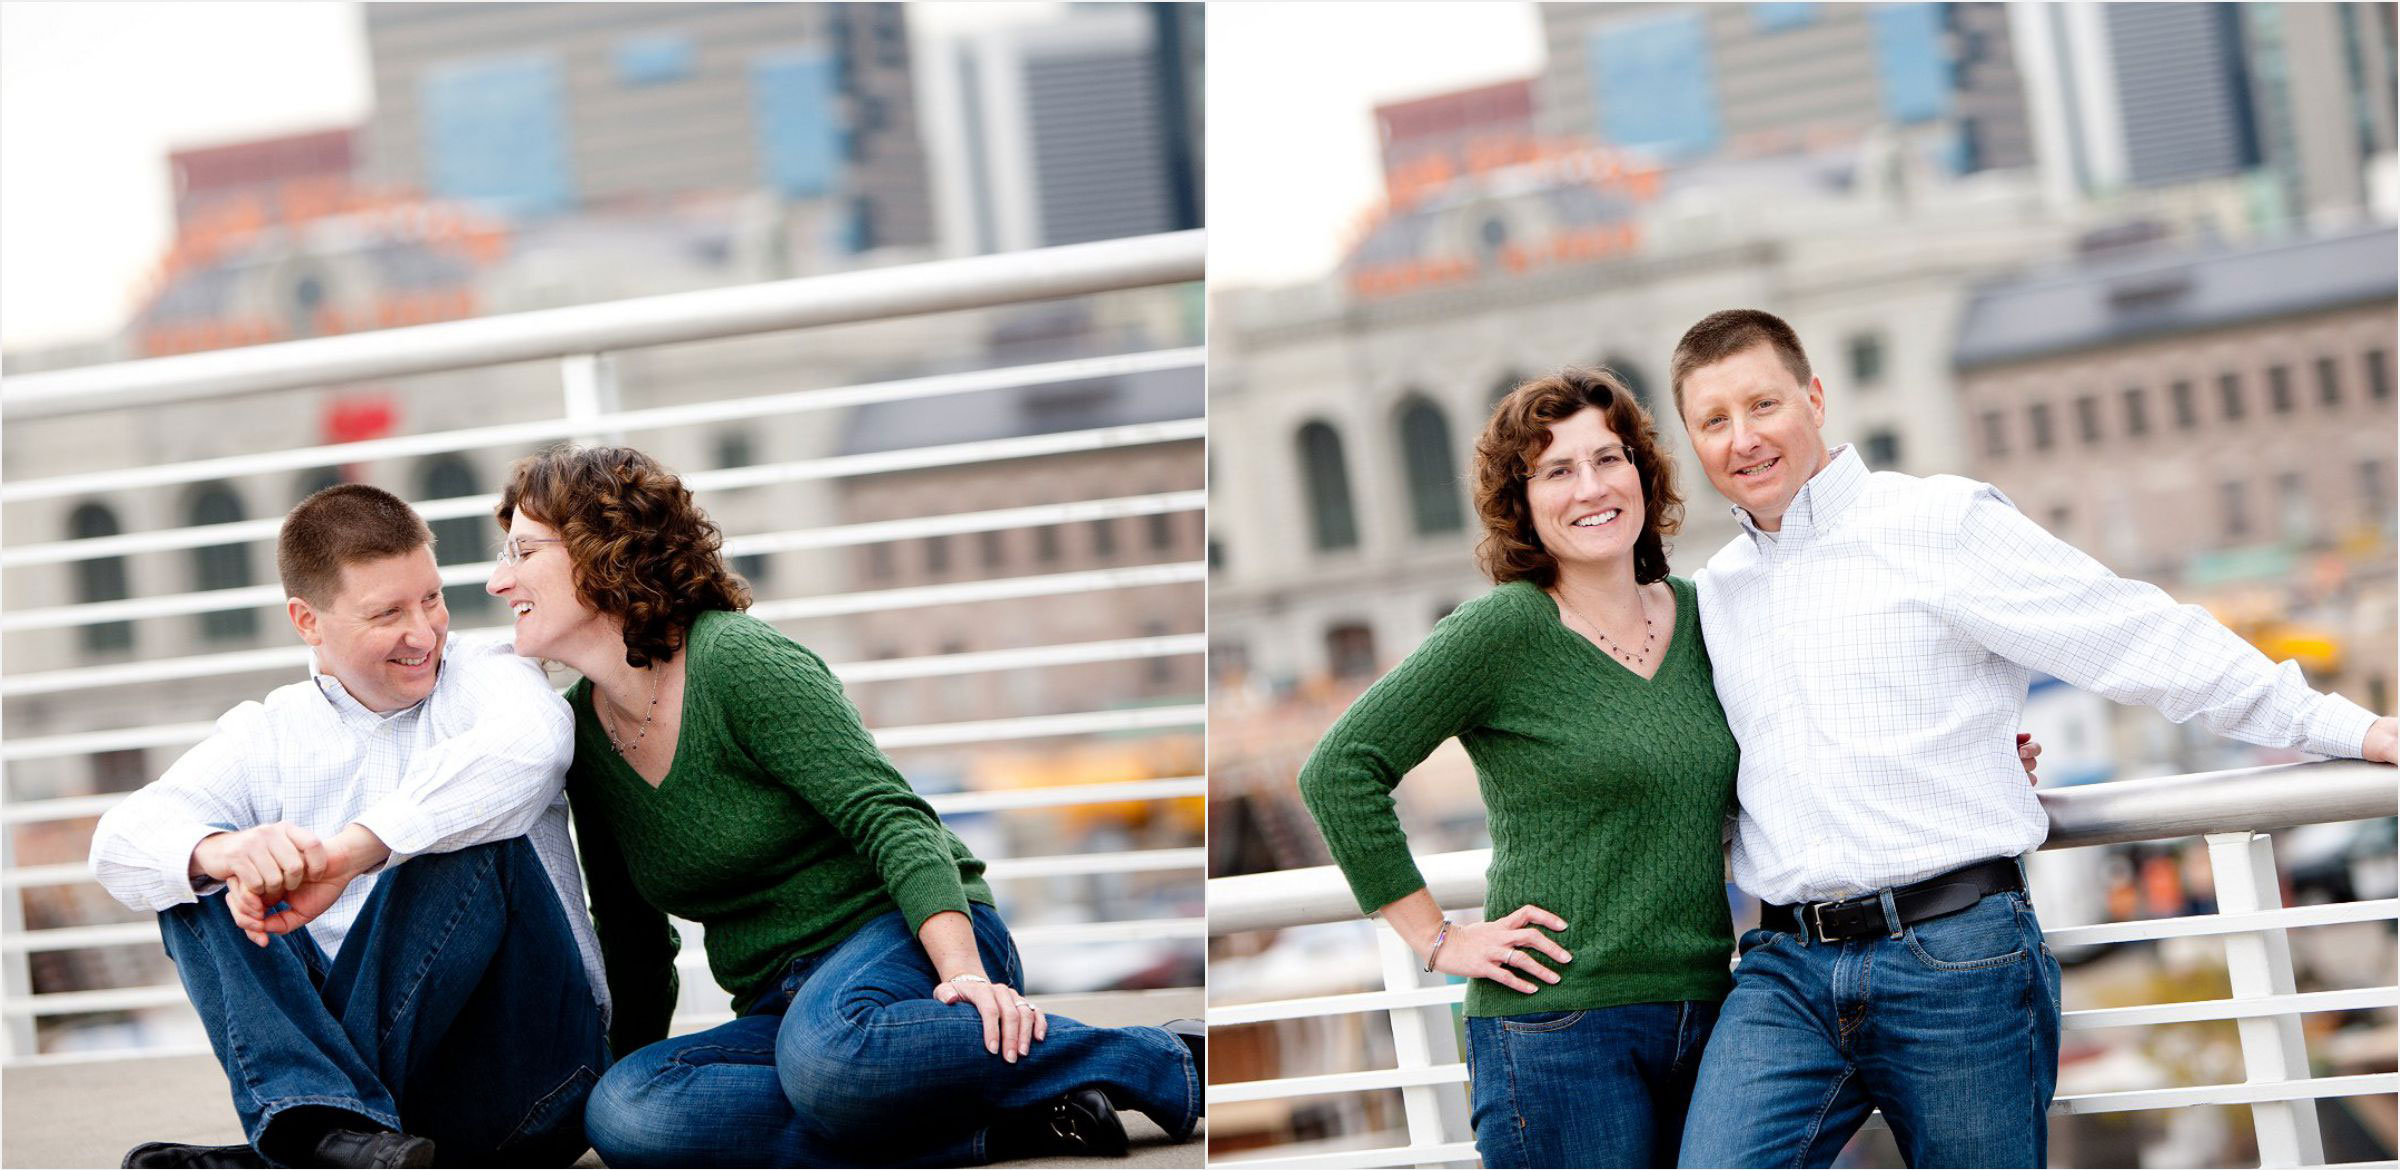 05-Denver-Family-Photography.jpg